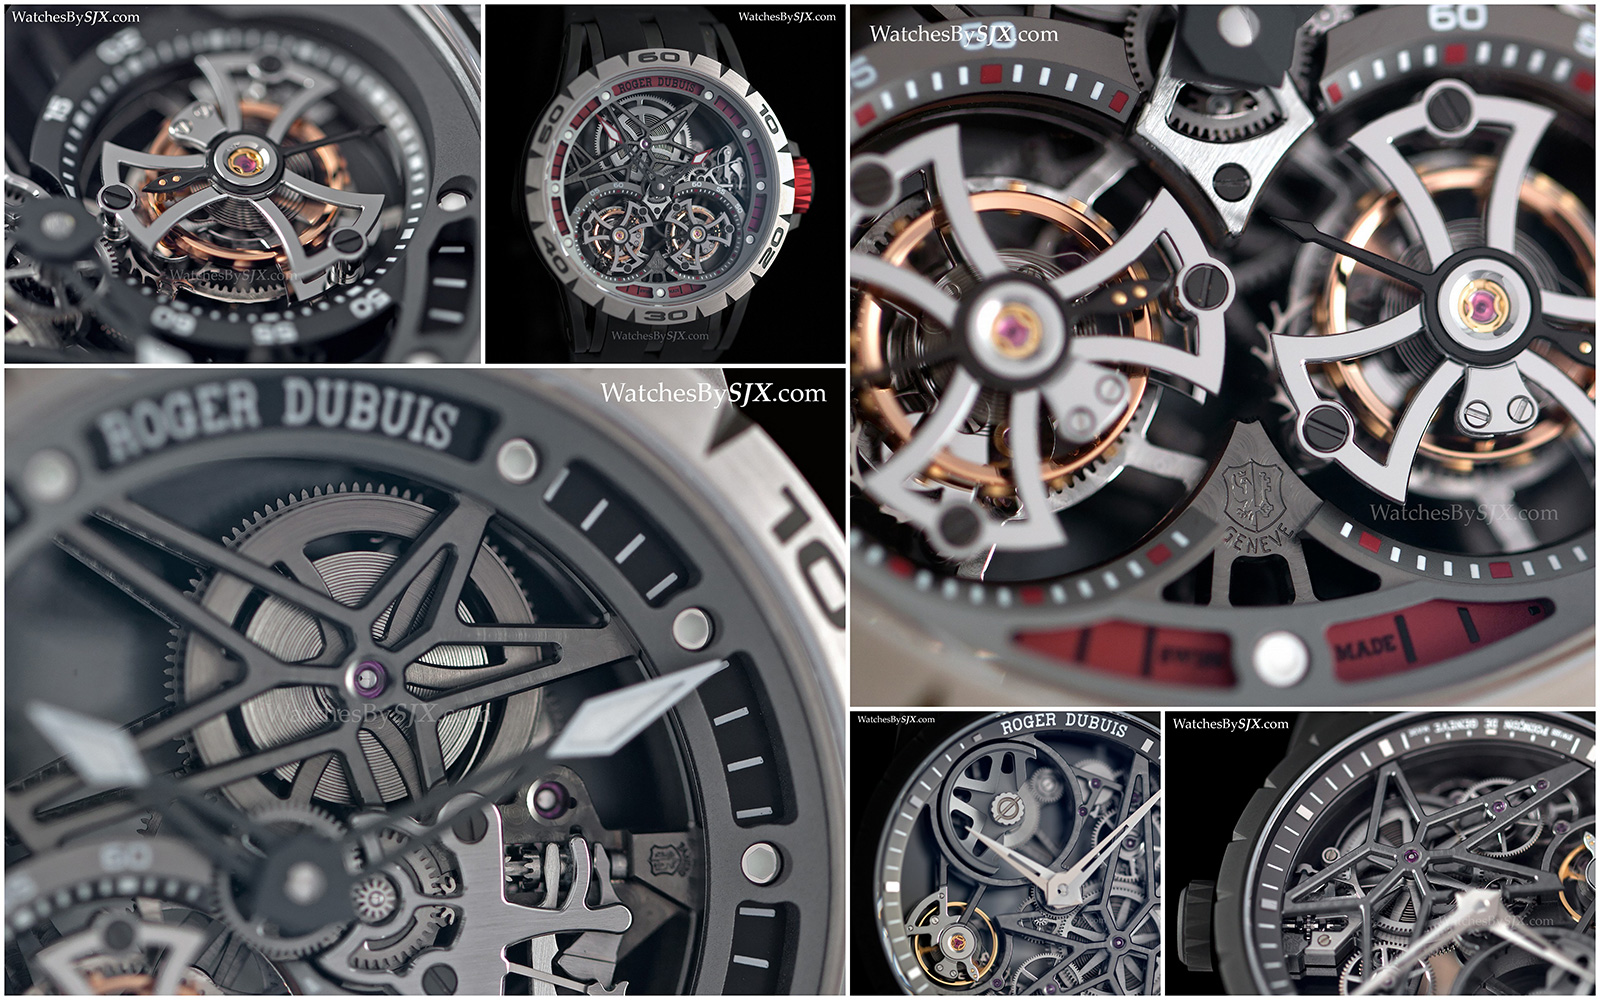 Roger-Dubuis-SIHH-2015-collage